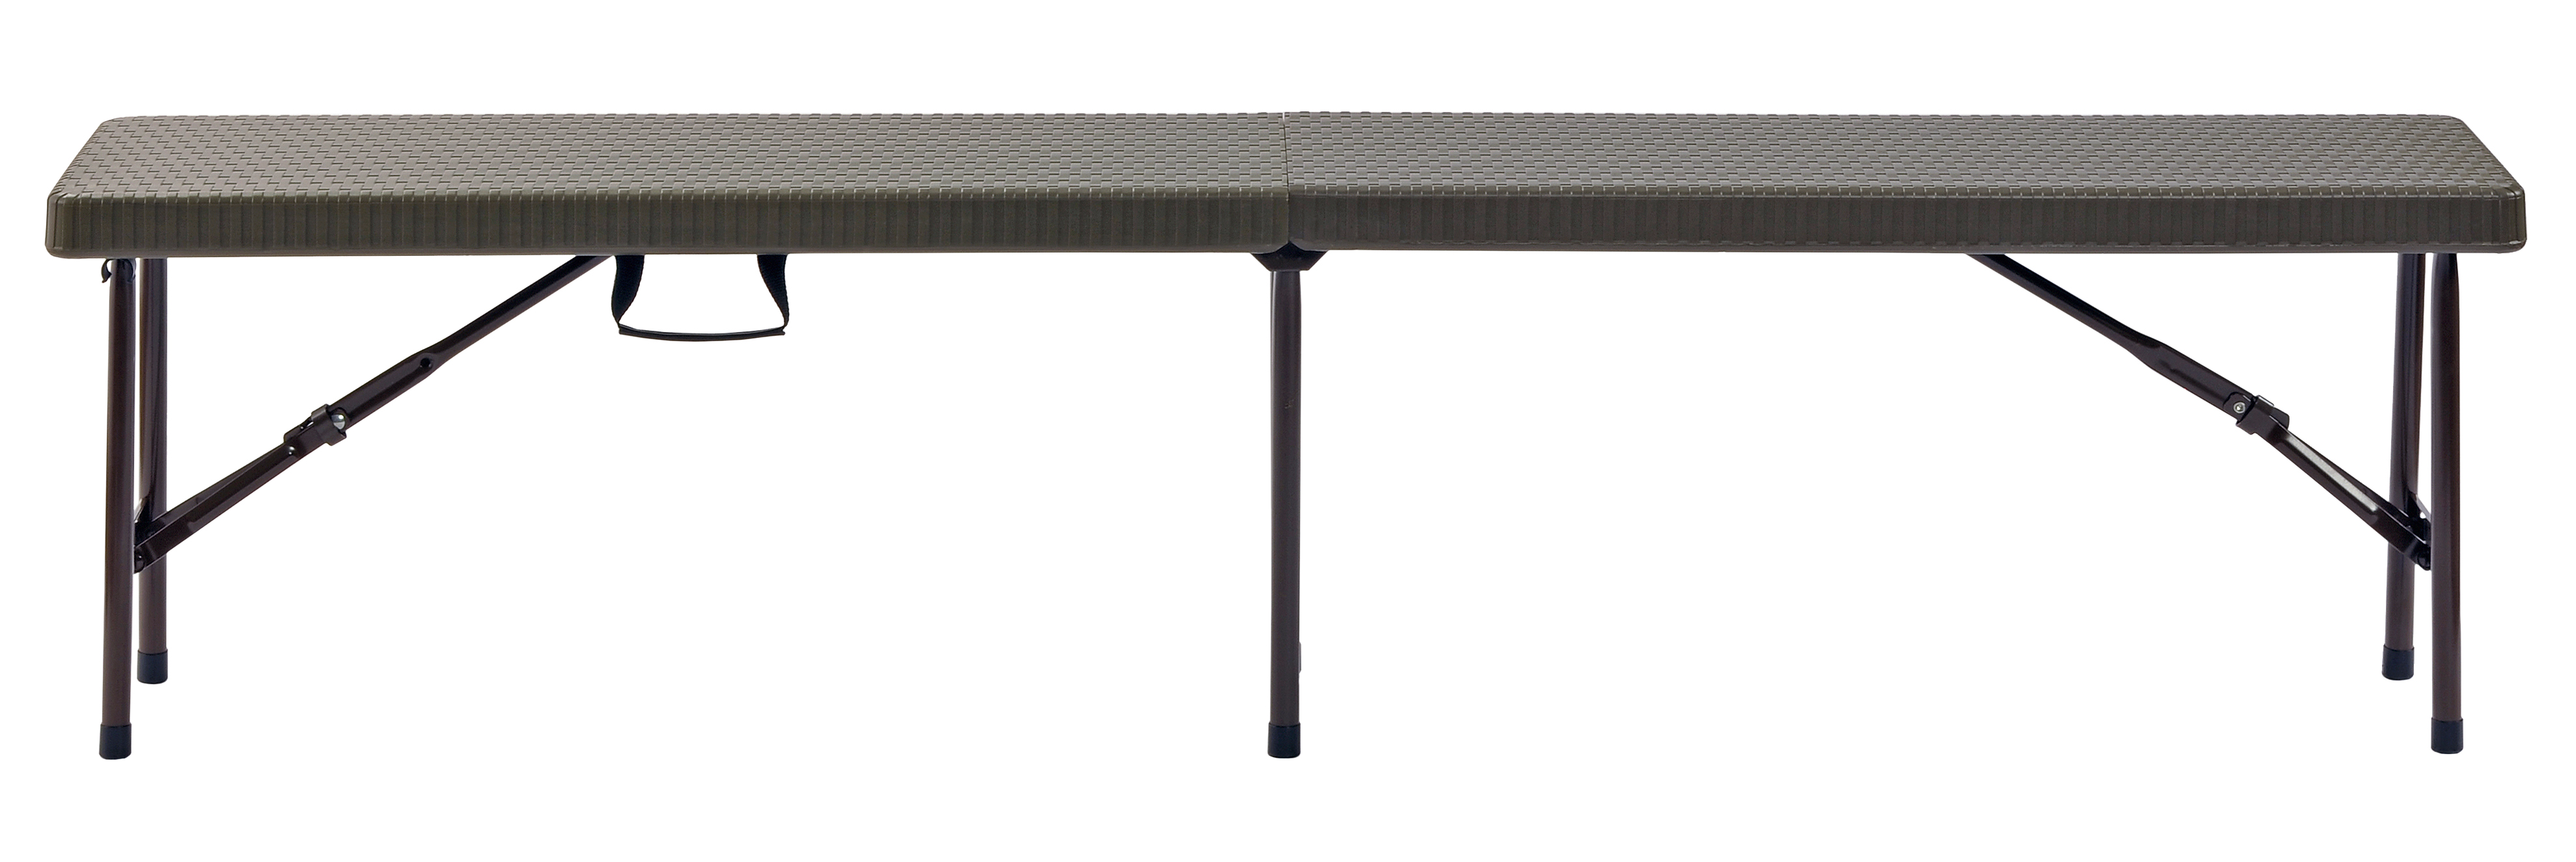 Exceptionnel Sandusky Folding Portable Plastic Indoor/Outdoor Picnic Bench, Brown